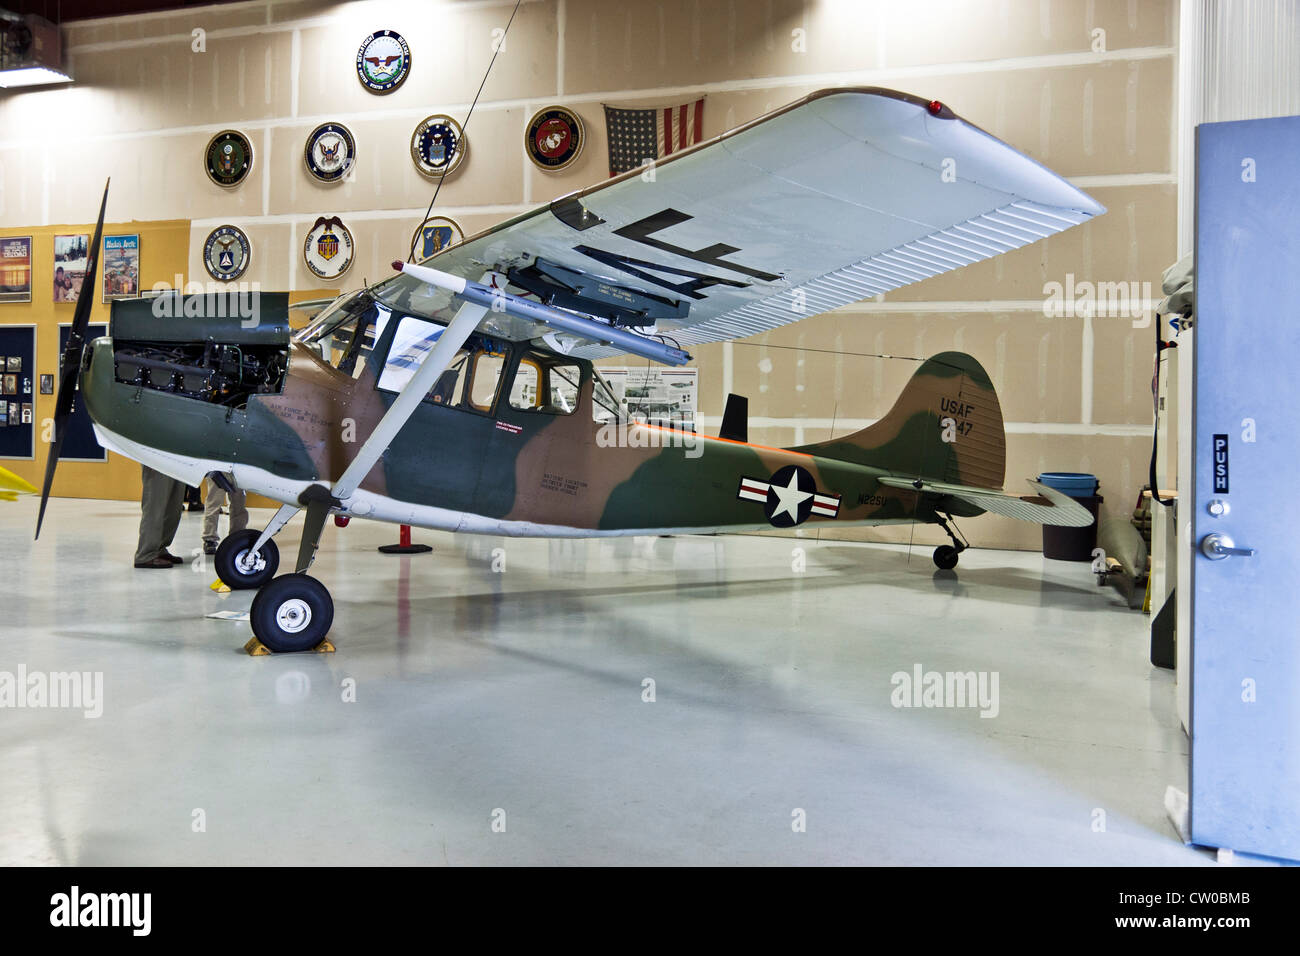 Cessna 172 0-1 observation prop plane used during Korean conflict for front line communication museum display camouflage - Stock Image